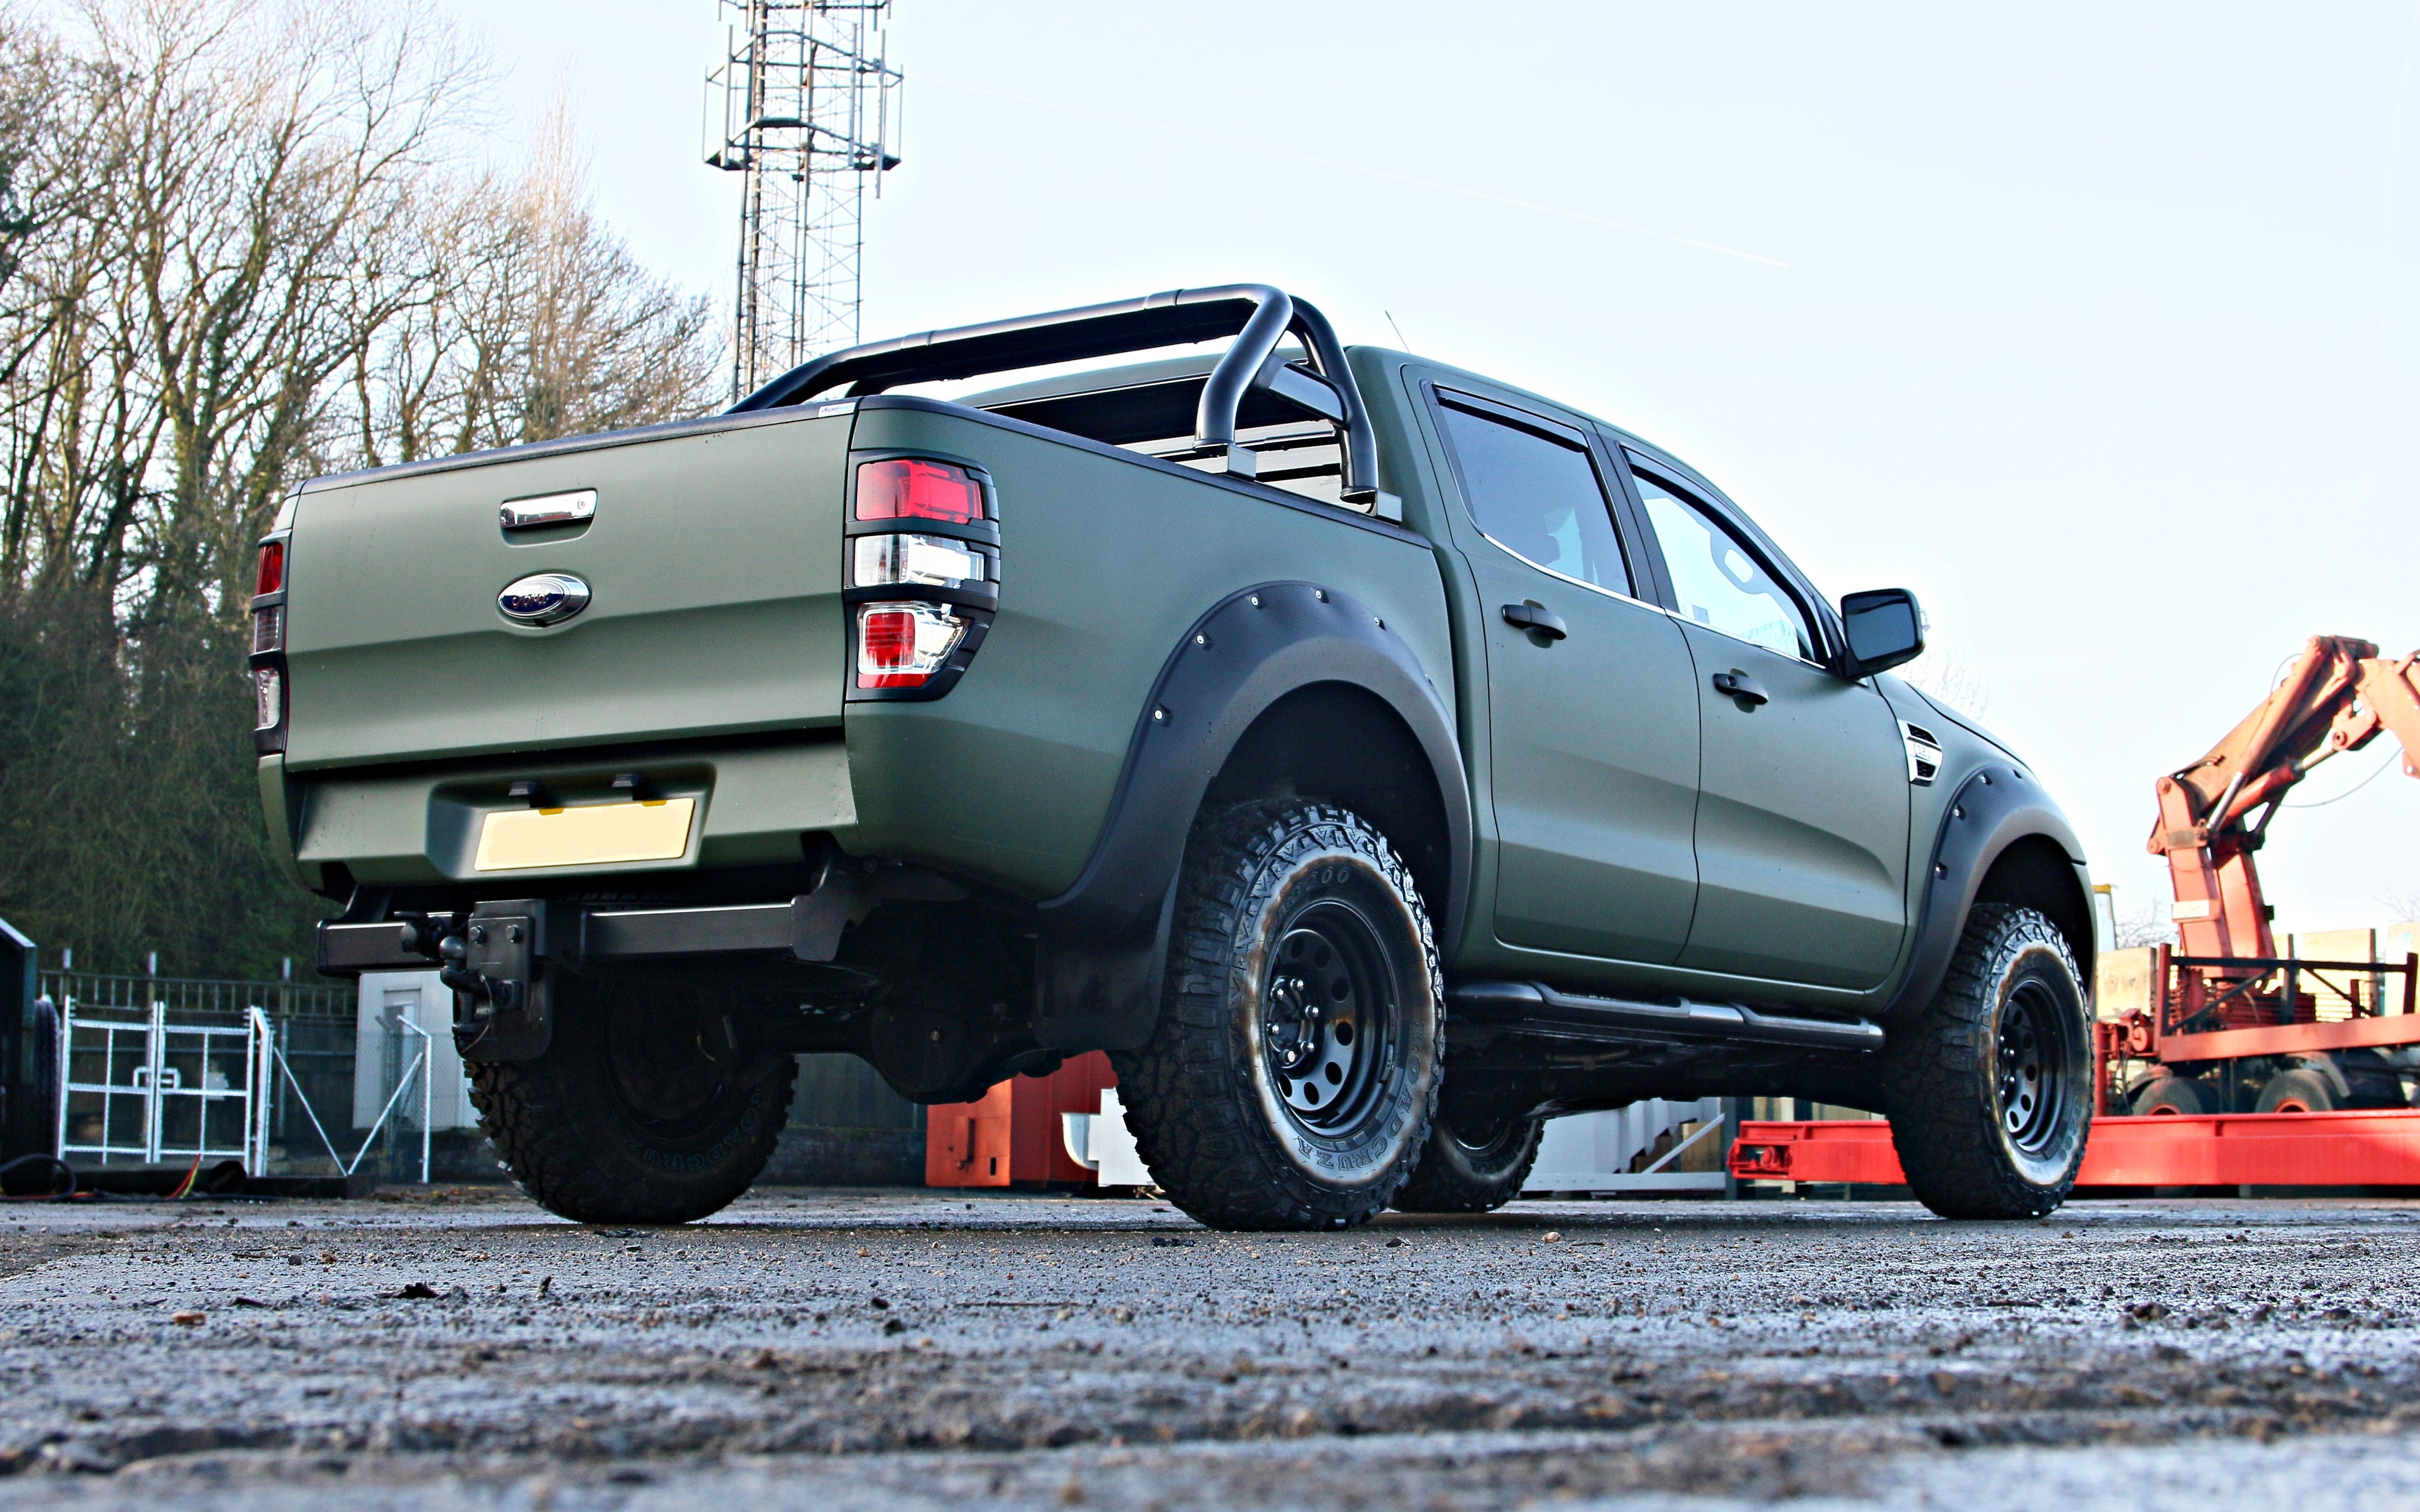 The all new T7 SEEKER Camo Raptor in matte military green!